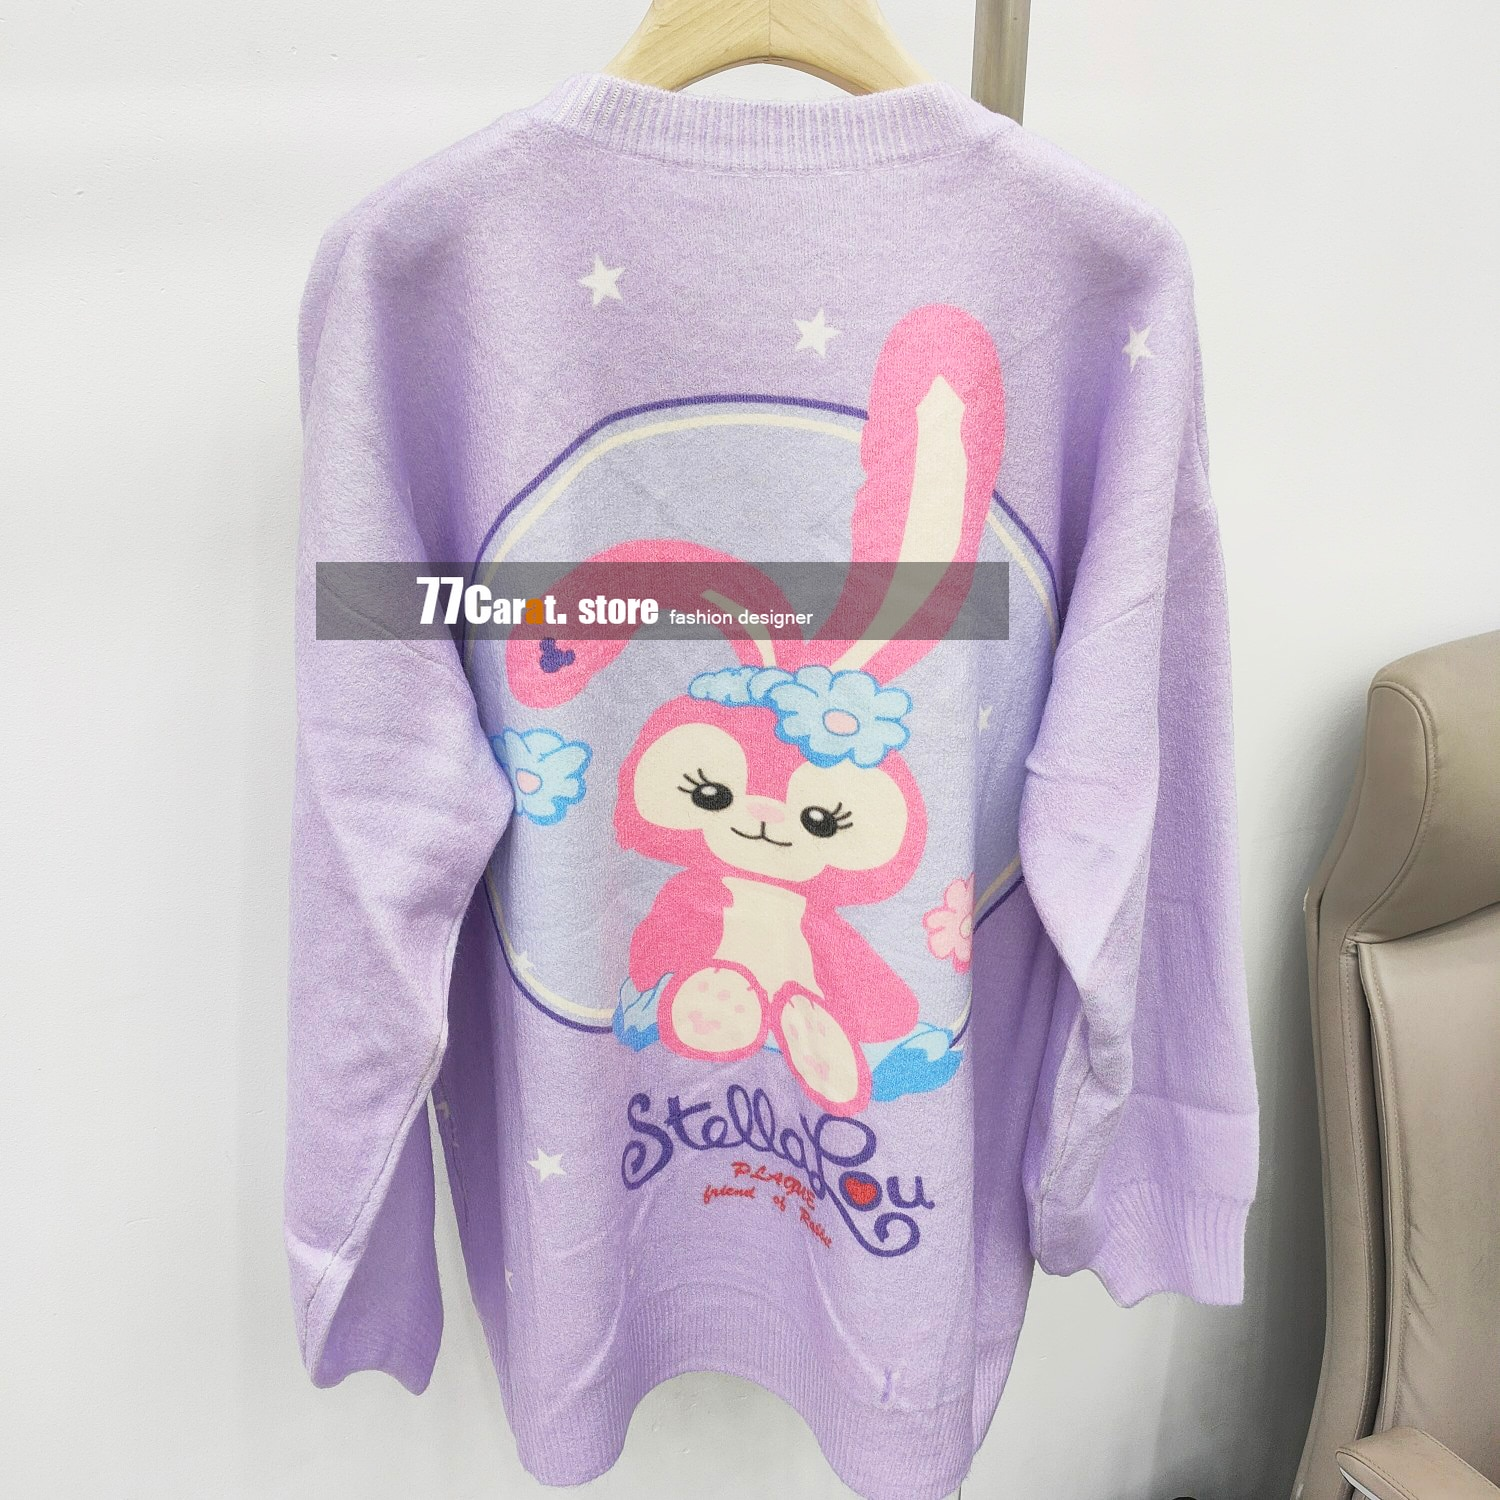 2021 autumn woman fashion high quality beading wool sweater cute rabbit jacquard purple sweaters jumper pullover casual clothes enlarge